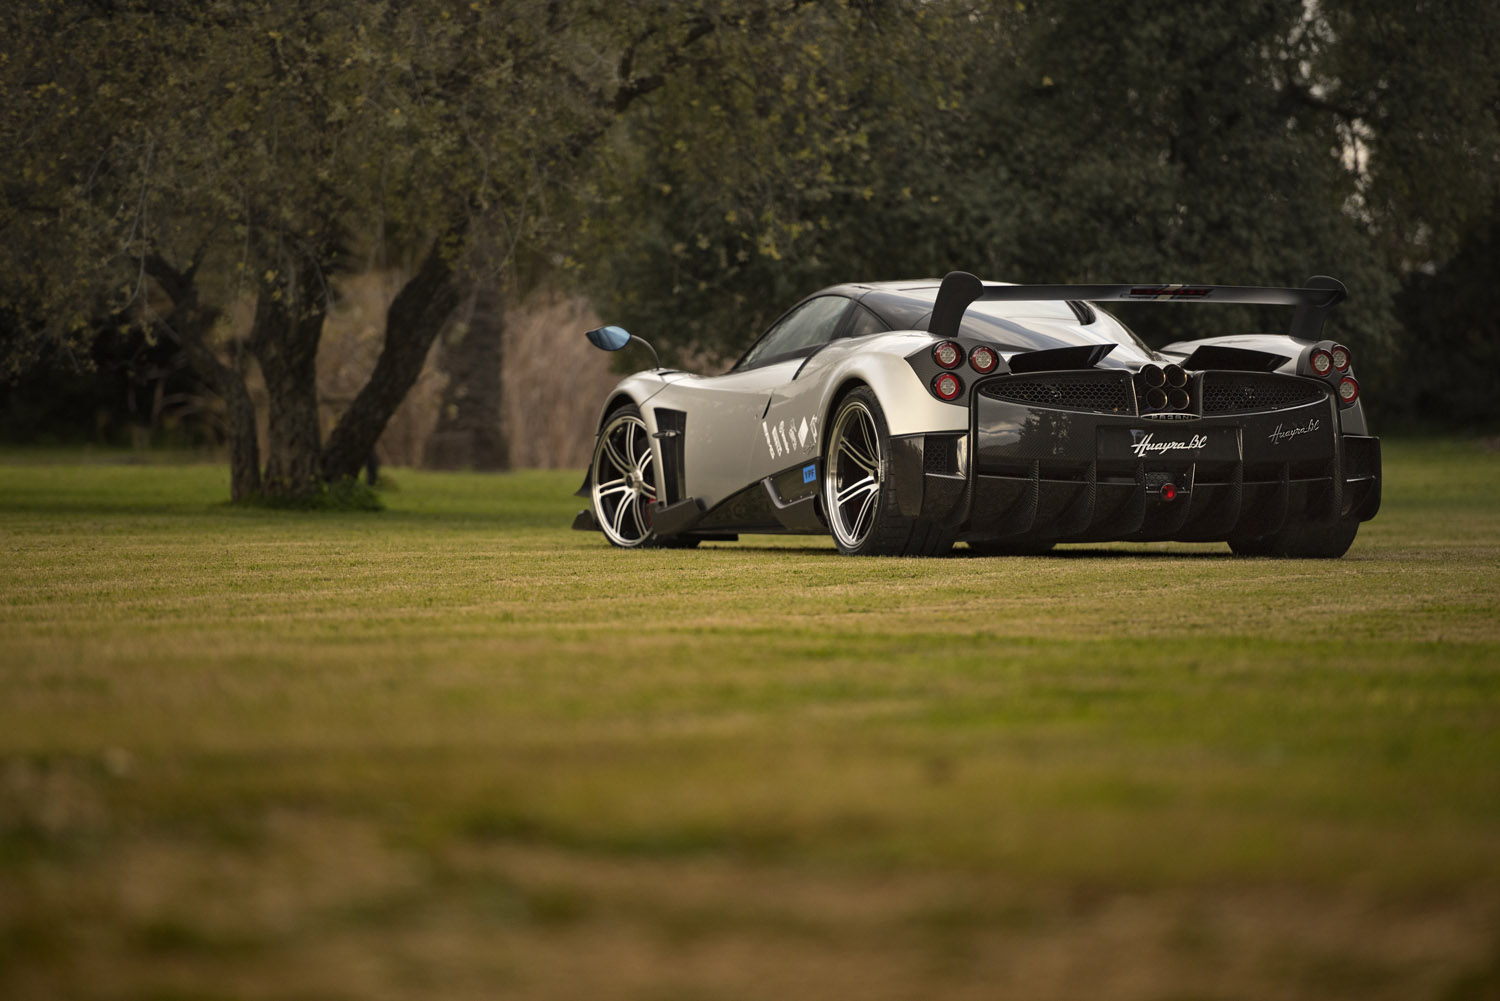 The Pagani Huayra Bc Is A Fact